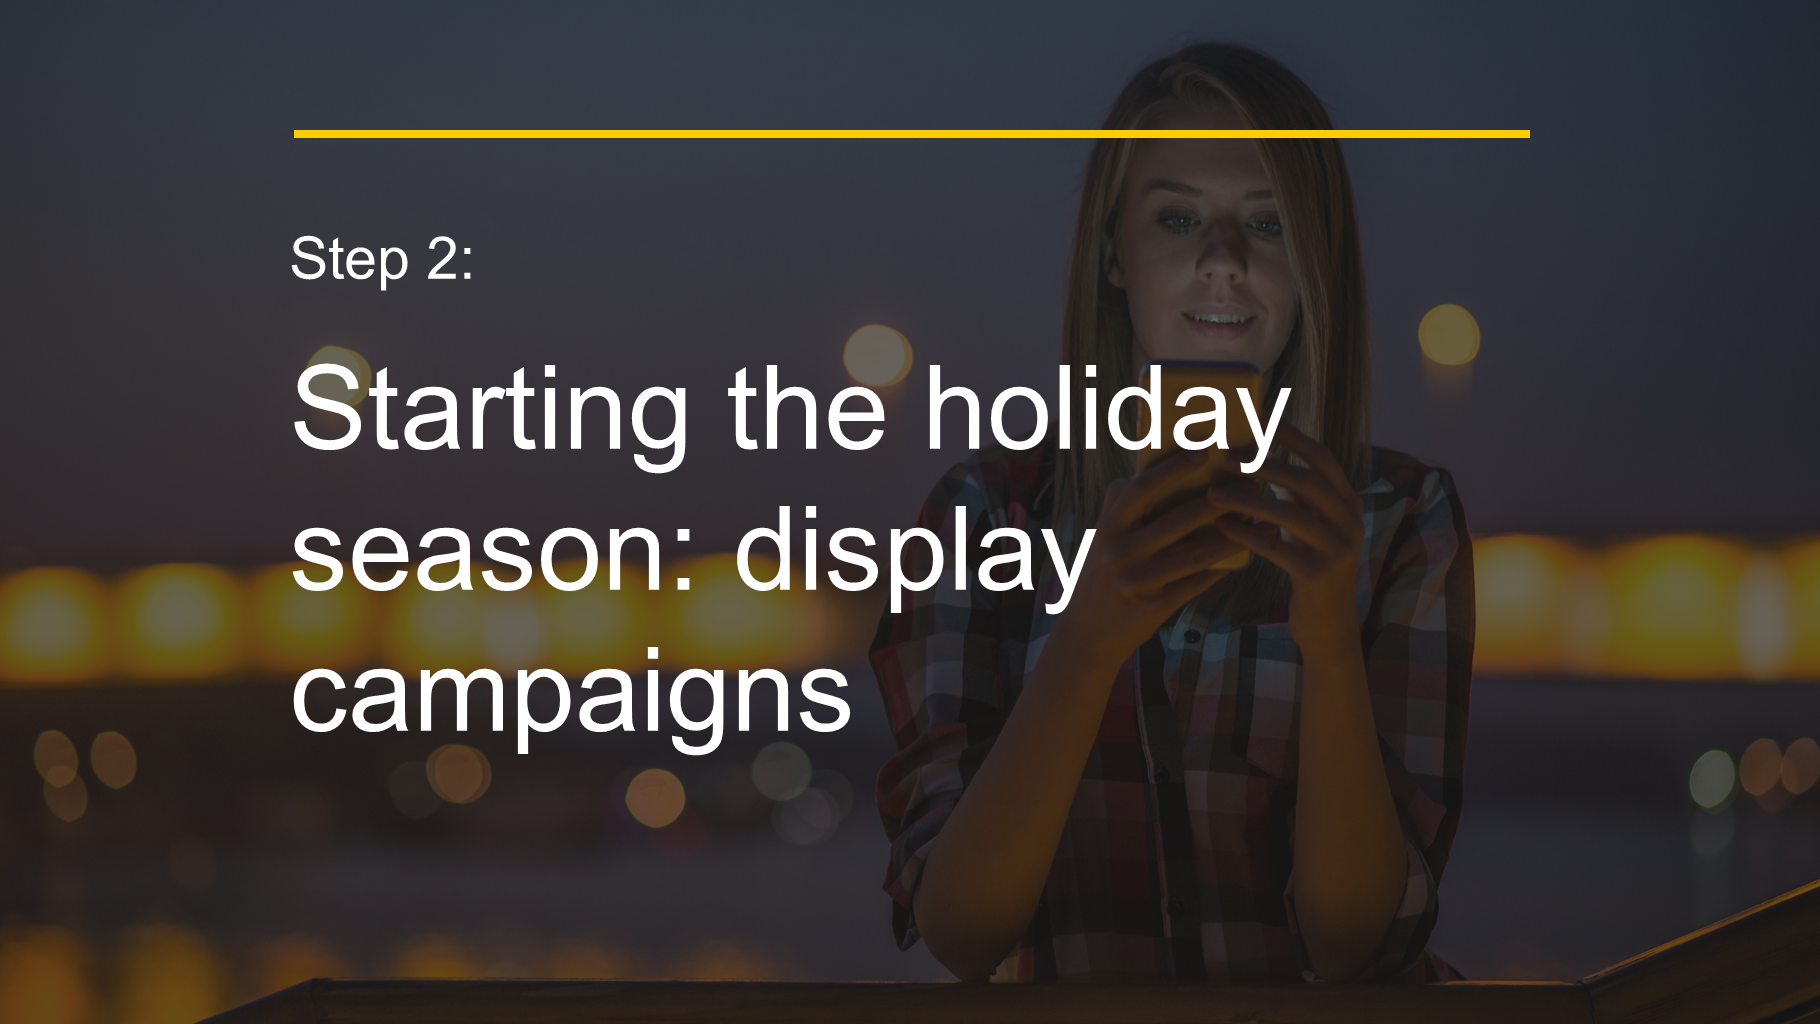 Step 2: Starting the holiday season: display campaigns